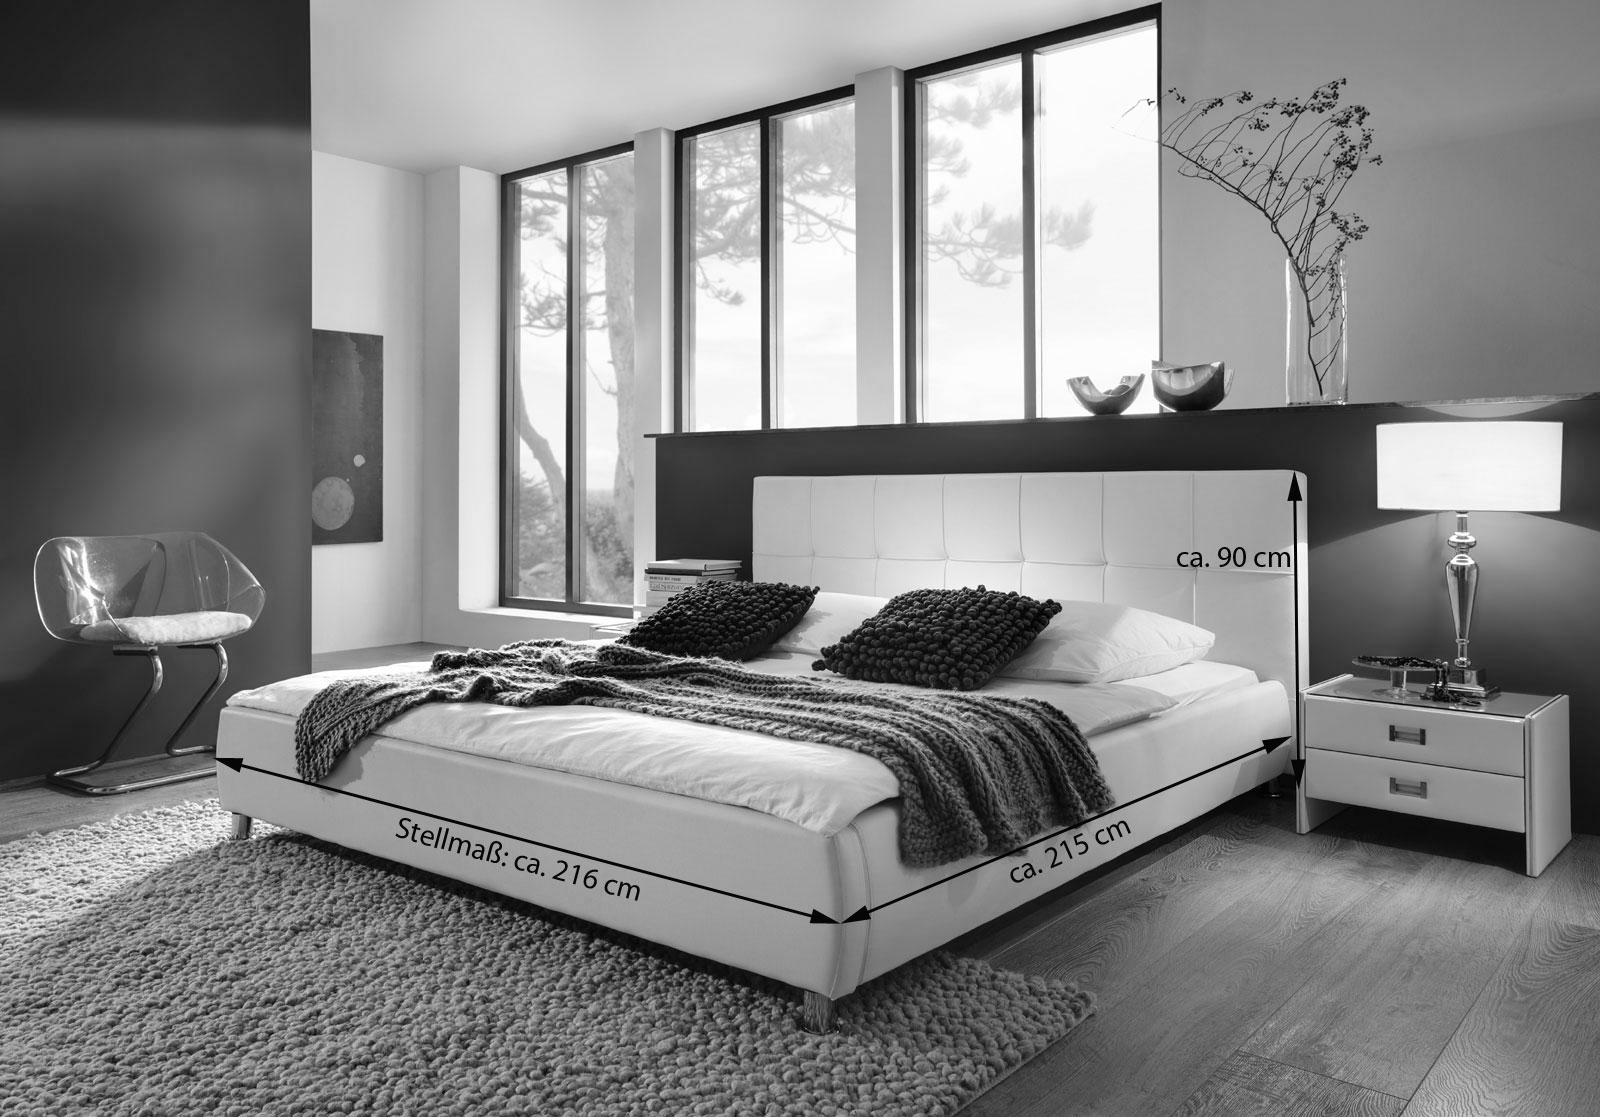 sam polsterbett 200x200 cm in wei bettgestell g nstig. Black Bedroom Furniture Sets. Home Design Ideas